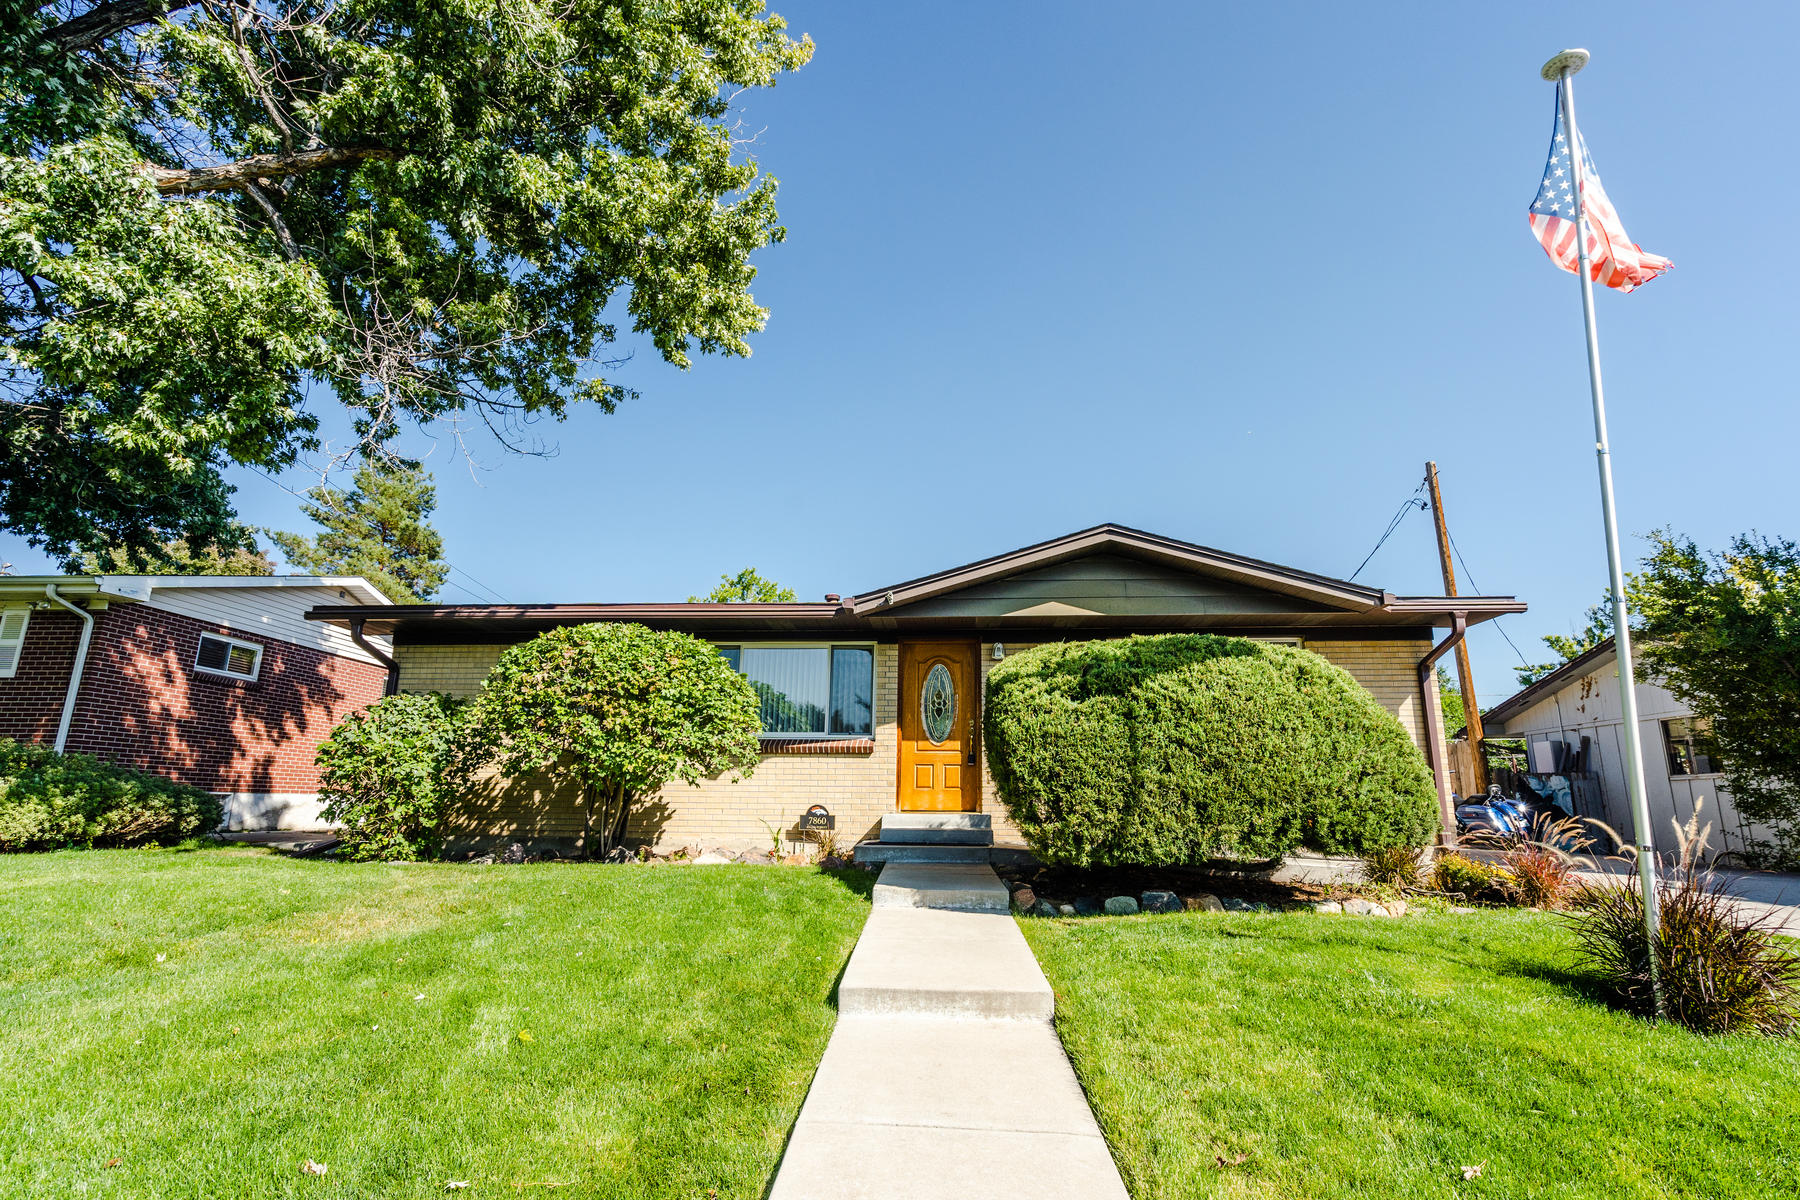 Single Family Homes for Sale at WOW factor! 7860 Julian St Westminster, Colorado 80030 United States